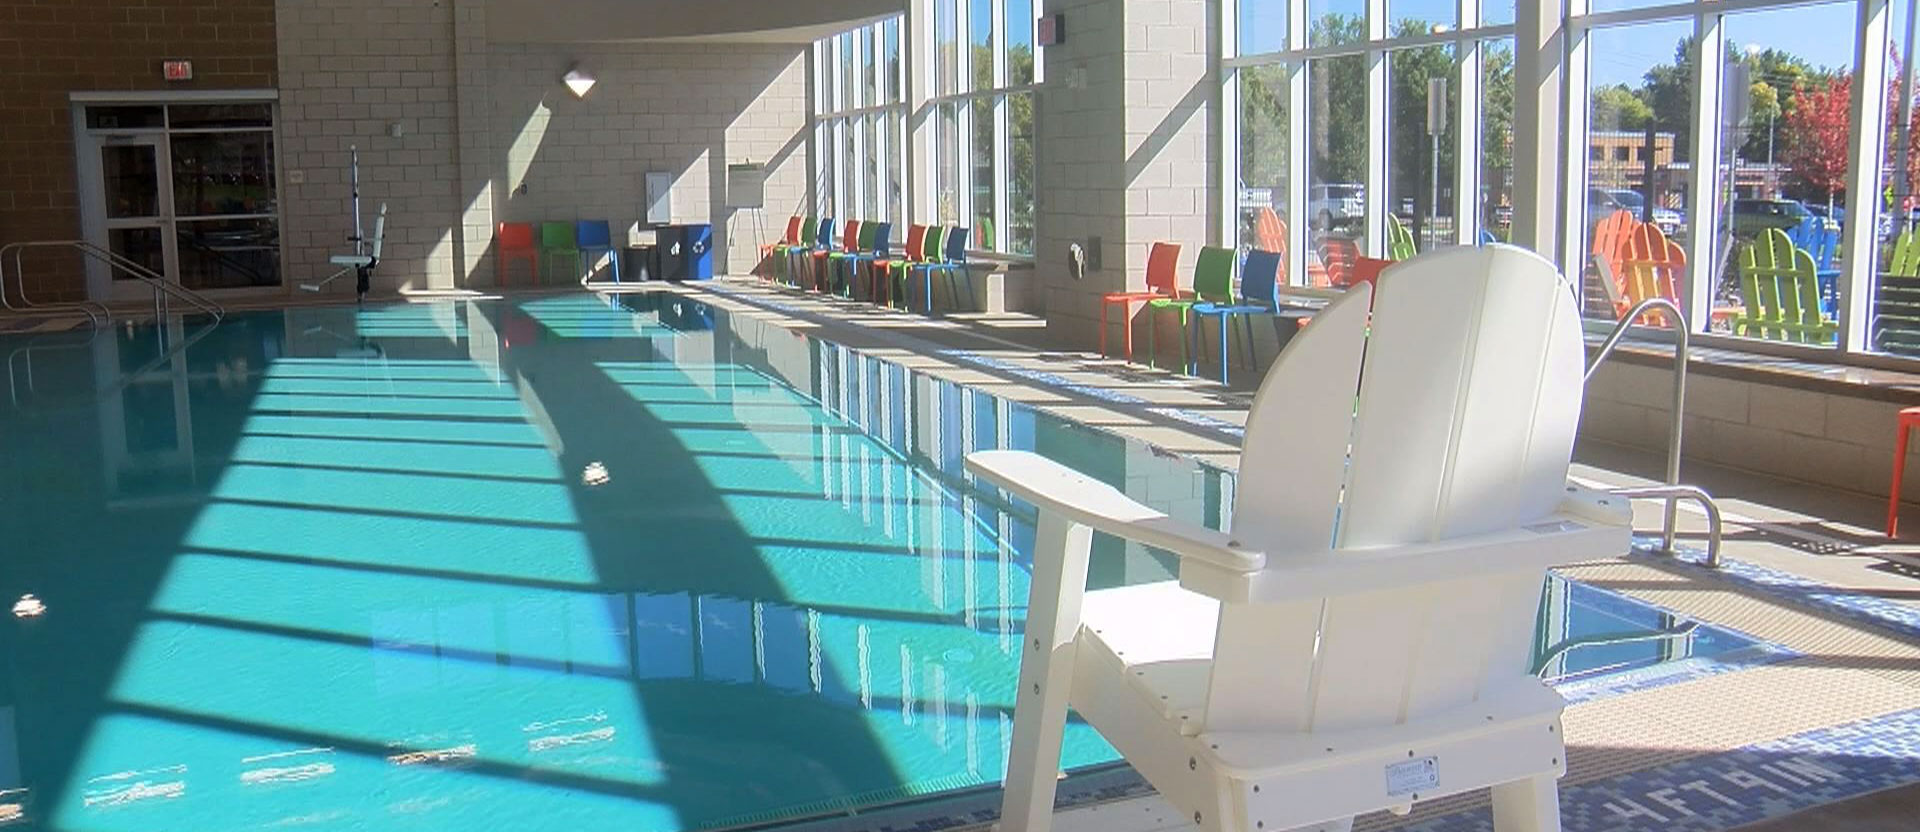 Midco Aquatic Center Will Host Swim Meets But Not As Soon